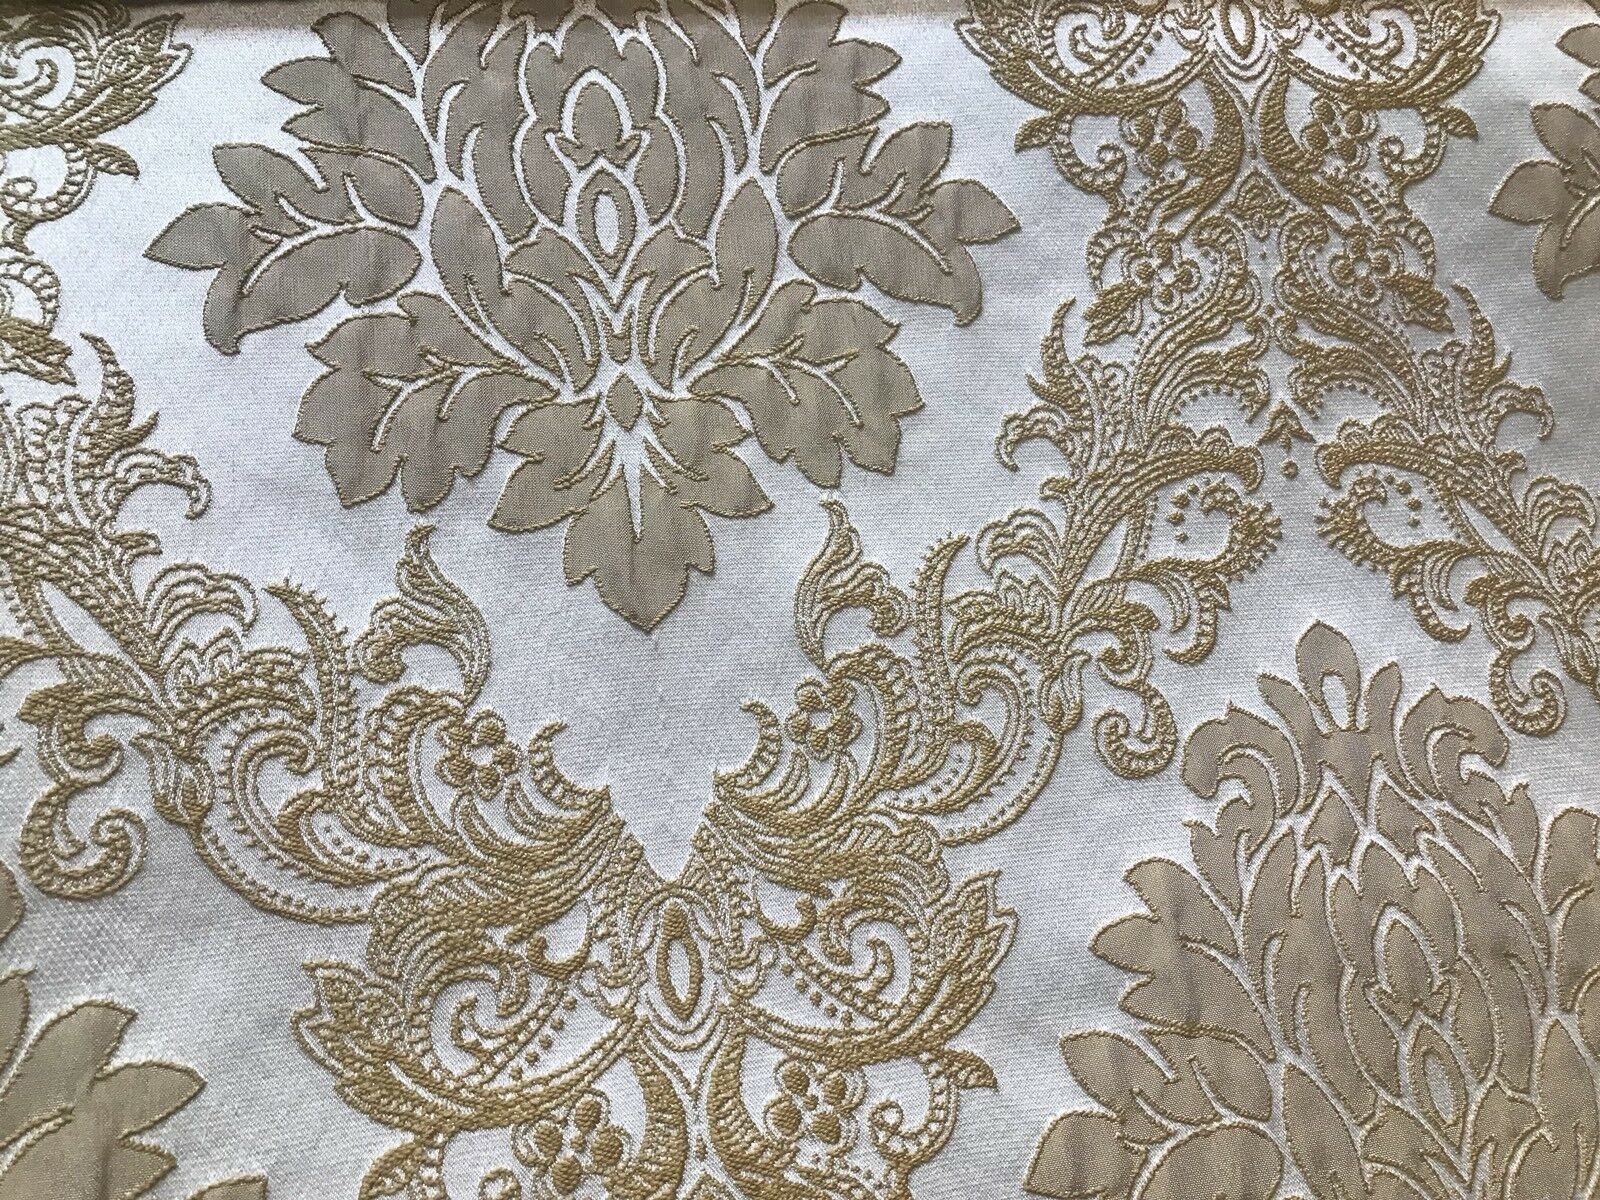 Designer Brocade Satin Fabric- Antique Gold And White - Upholstery Damask